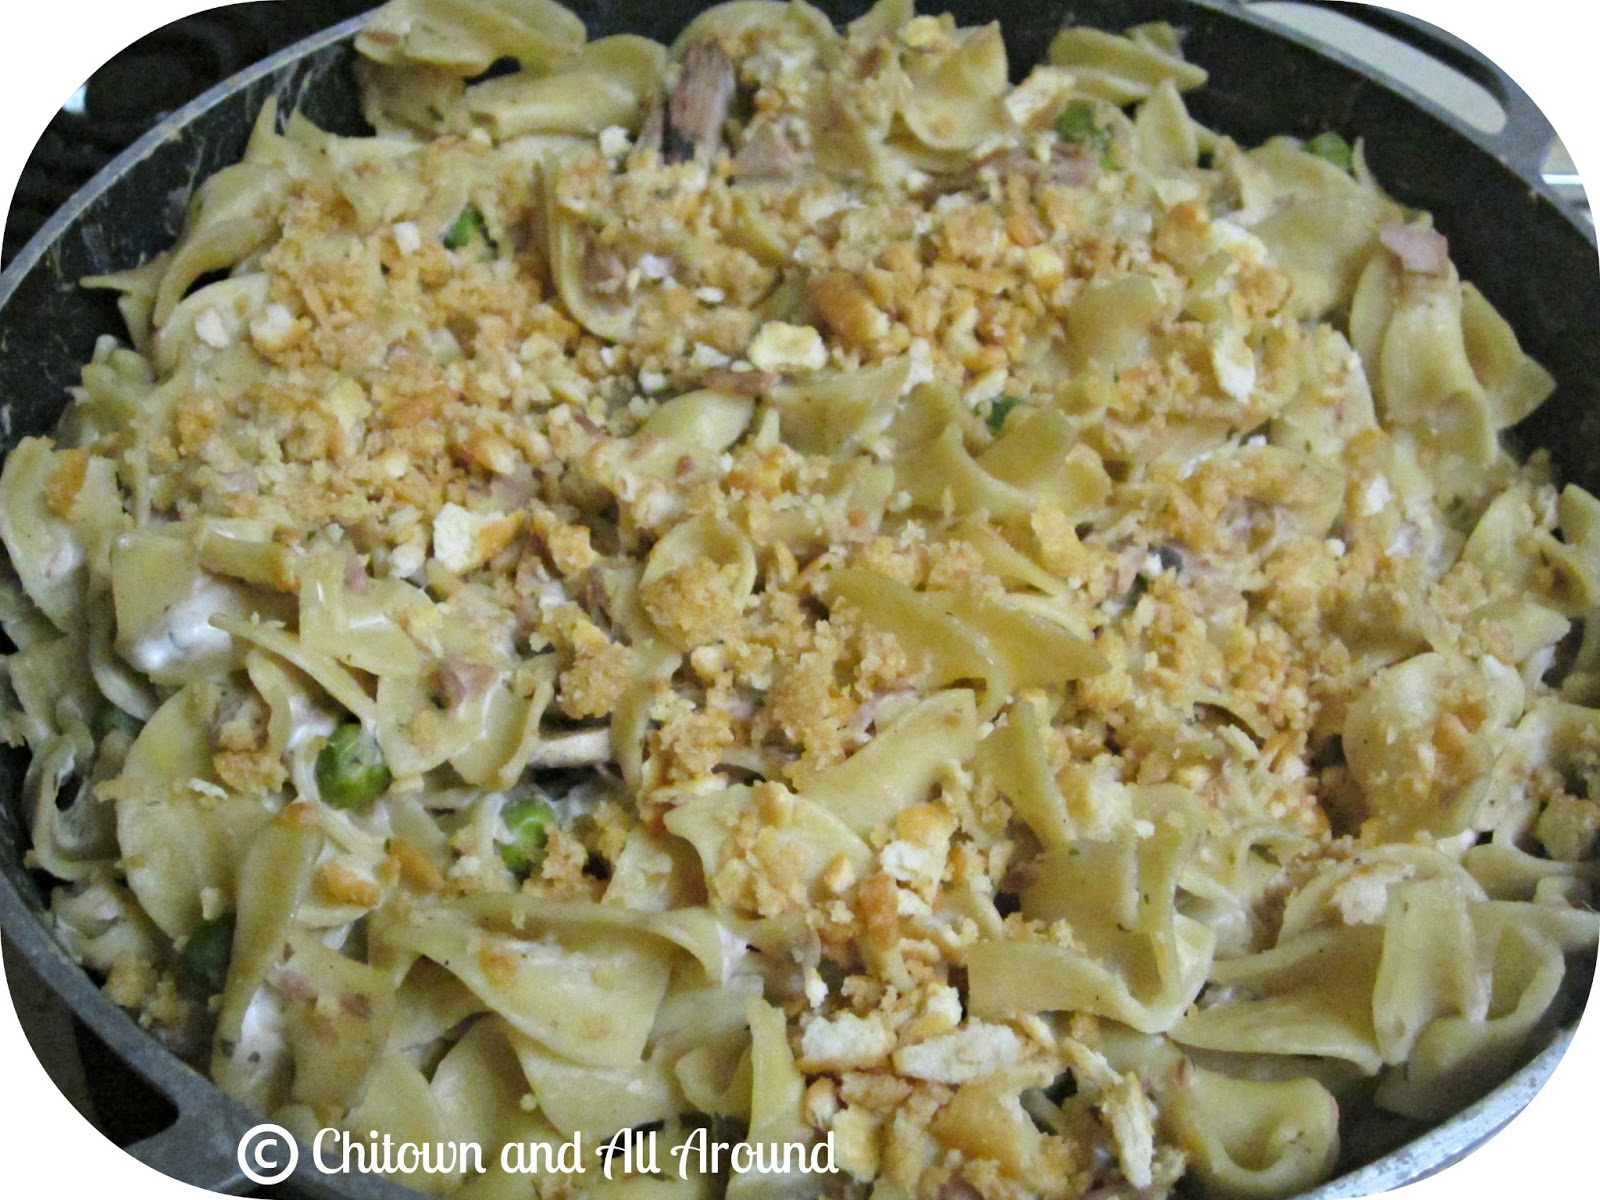 Chitown and all around recipe creamy tuna noodle casserole Tuna and philadelphia pasta